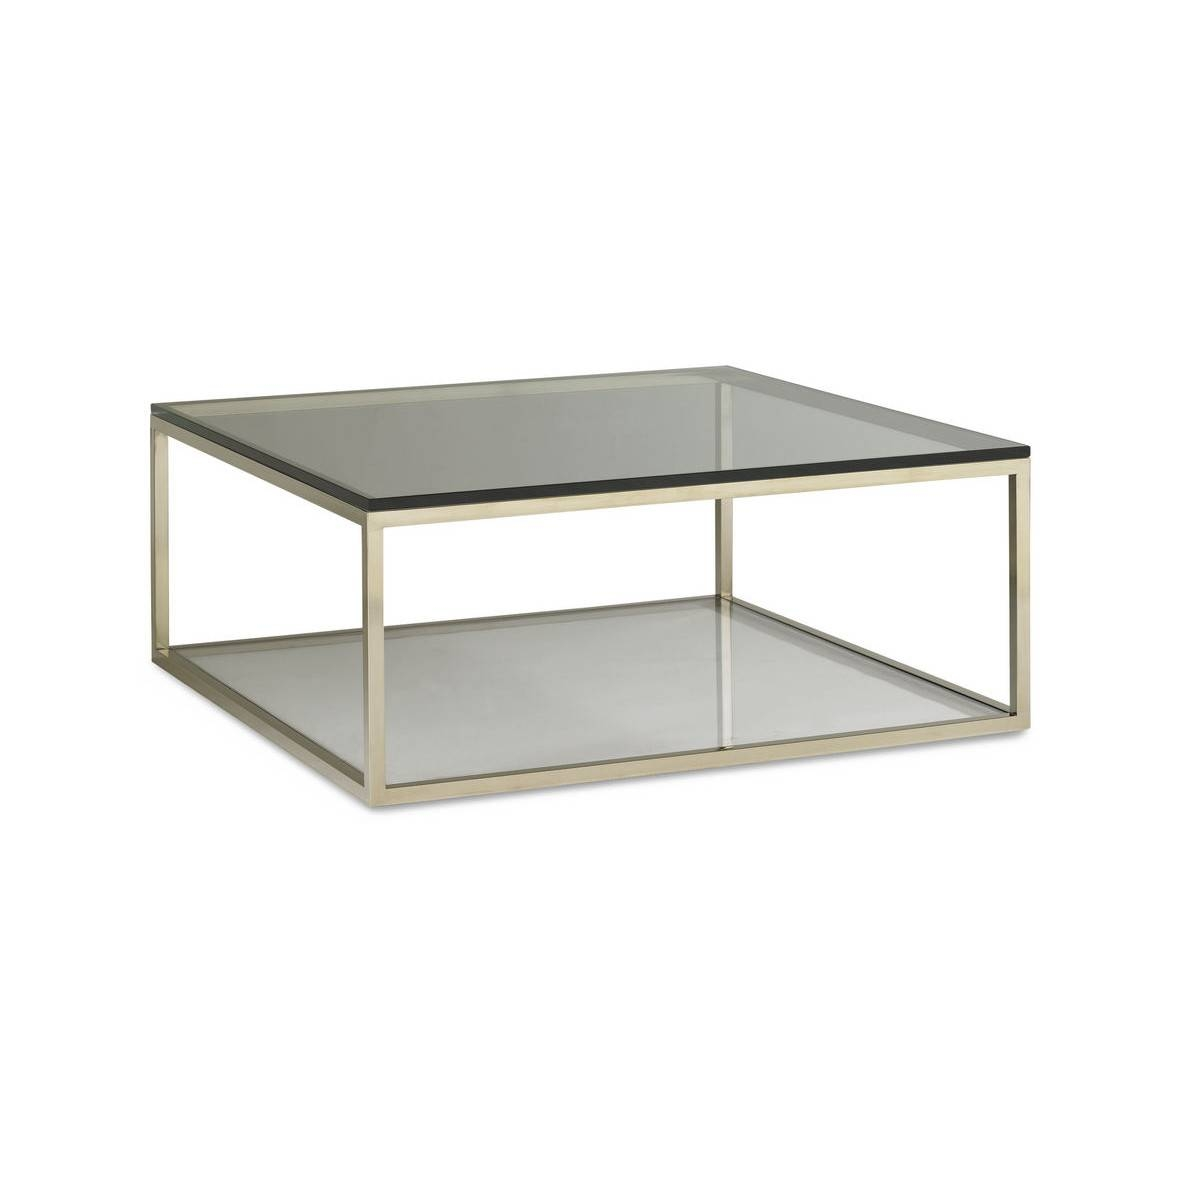 Glass Square Coffee Table - Jericho Mafjar Project with regard to Chrome And Wood Coffee Tables (Image 13 of 30)